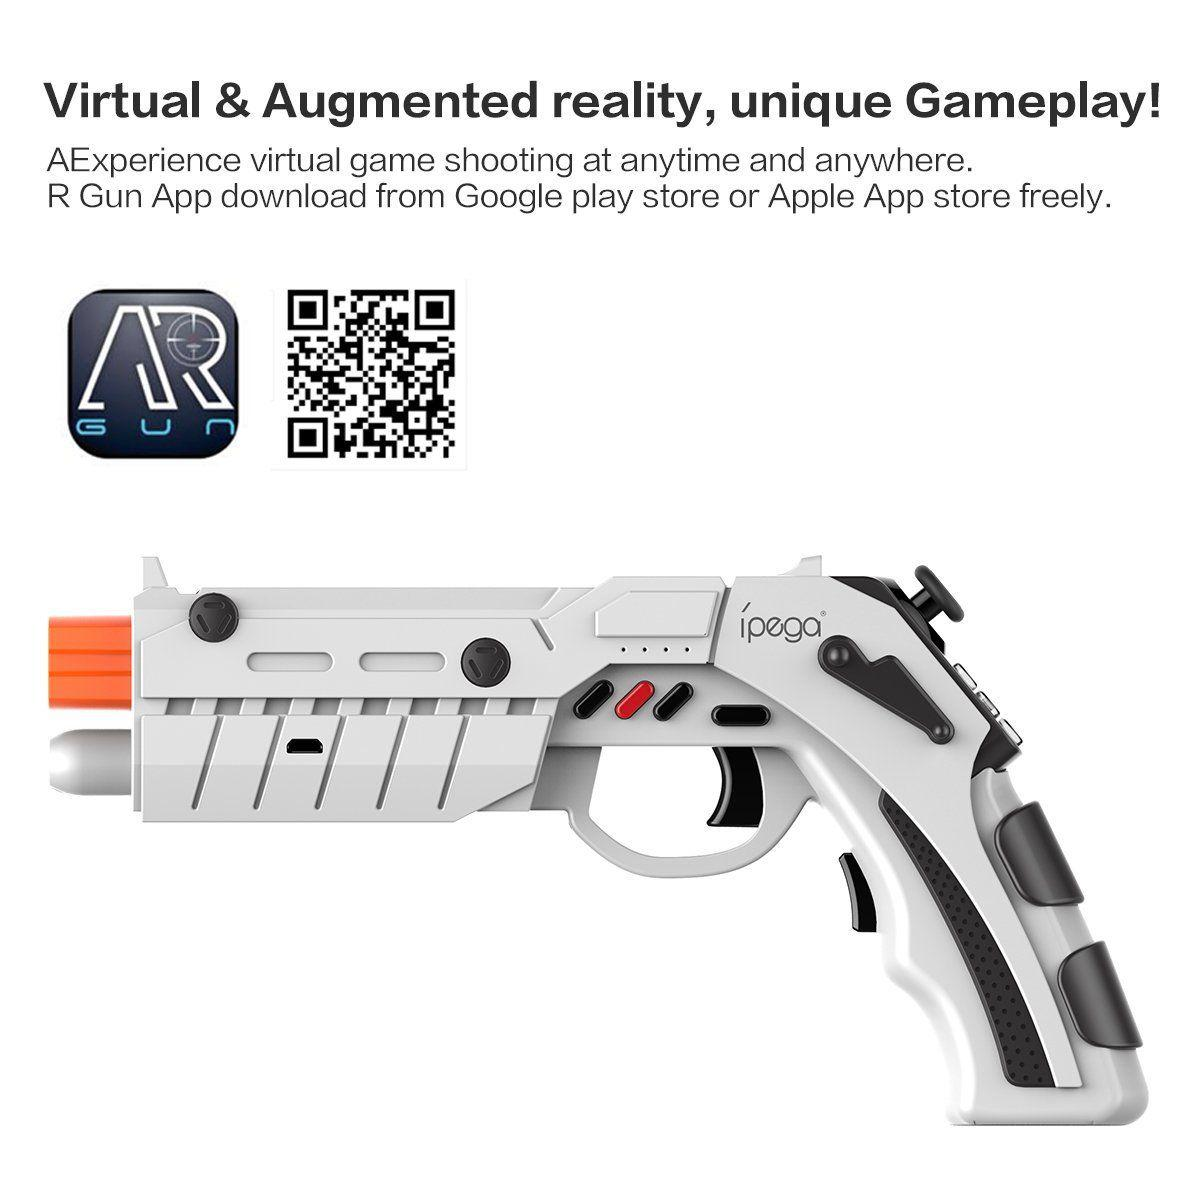 IPega PG-9082 AR GAMING GUN Wireless Bluetooth Controller with vibration  function for AR and VR games for Android and iOS Smartphones